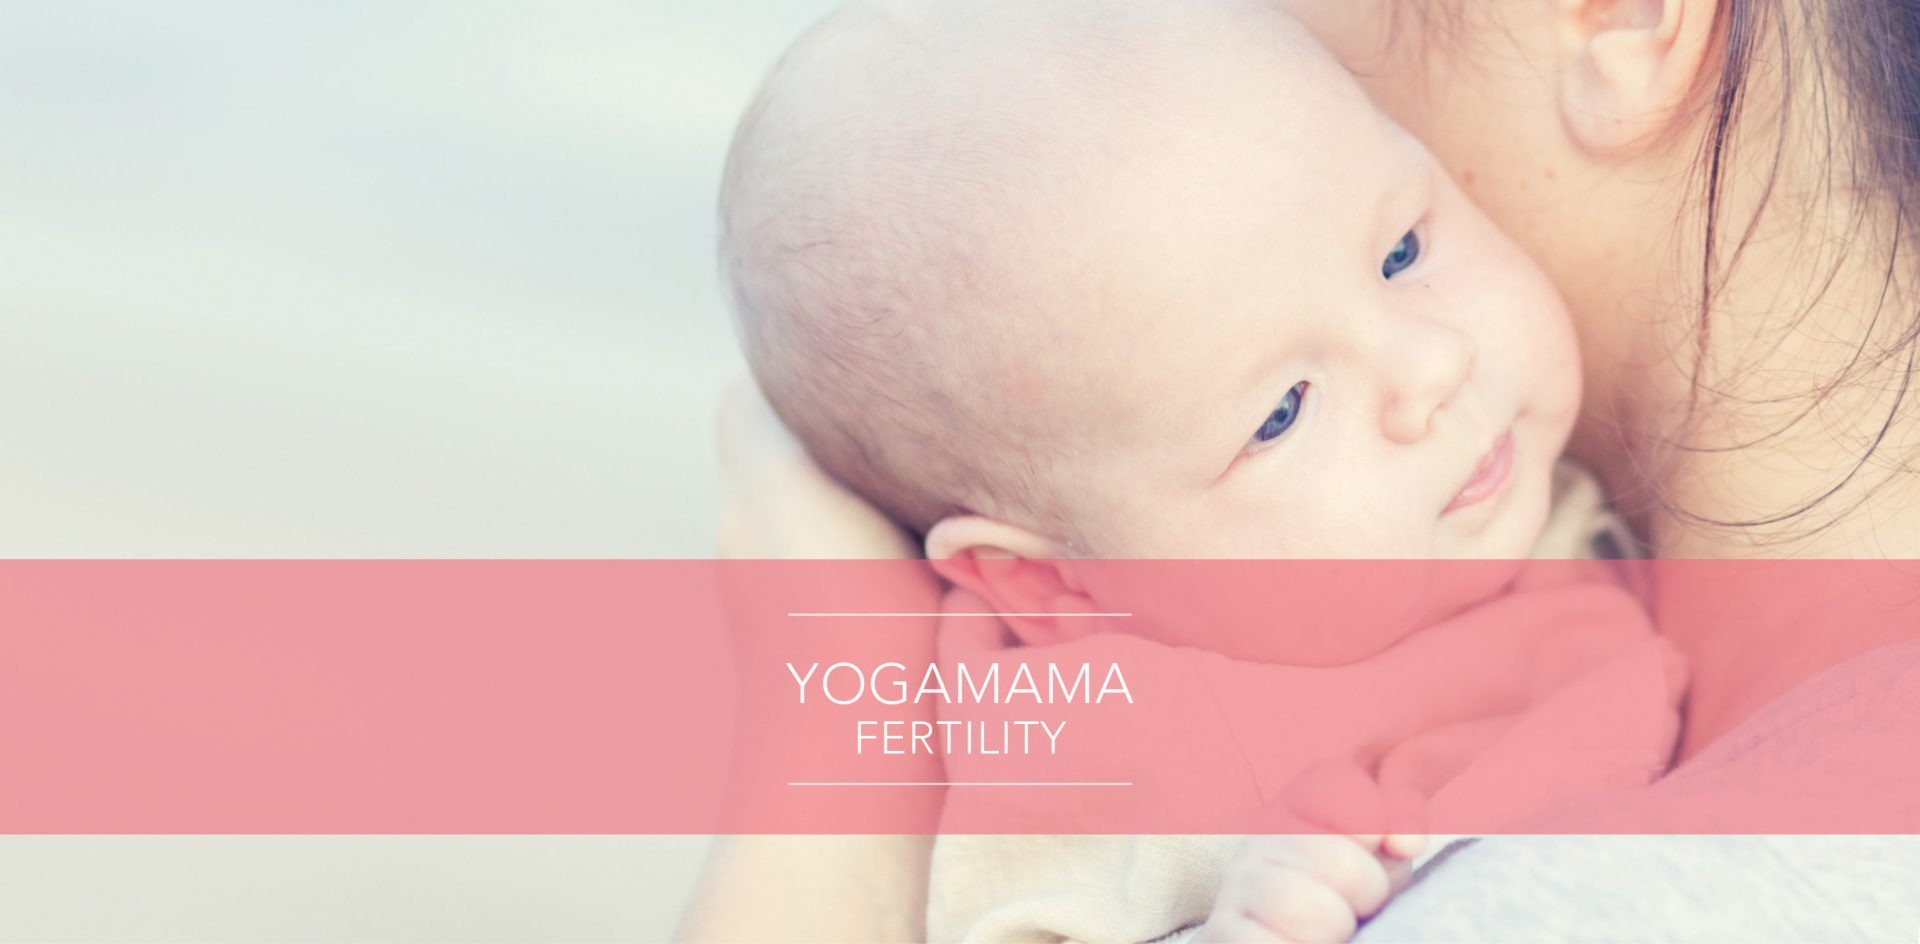 Hypnotherapy for Fertility at Yoga Mama Wellness